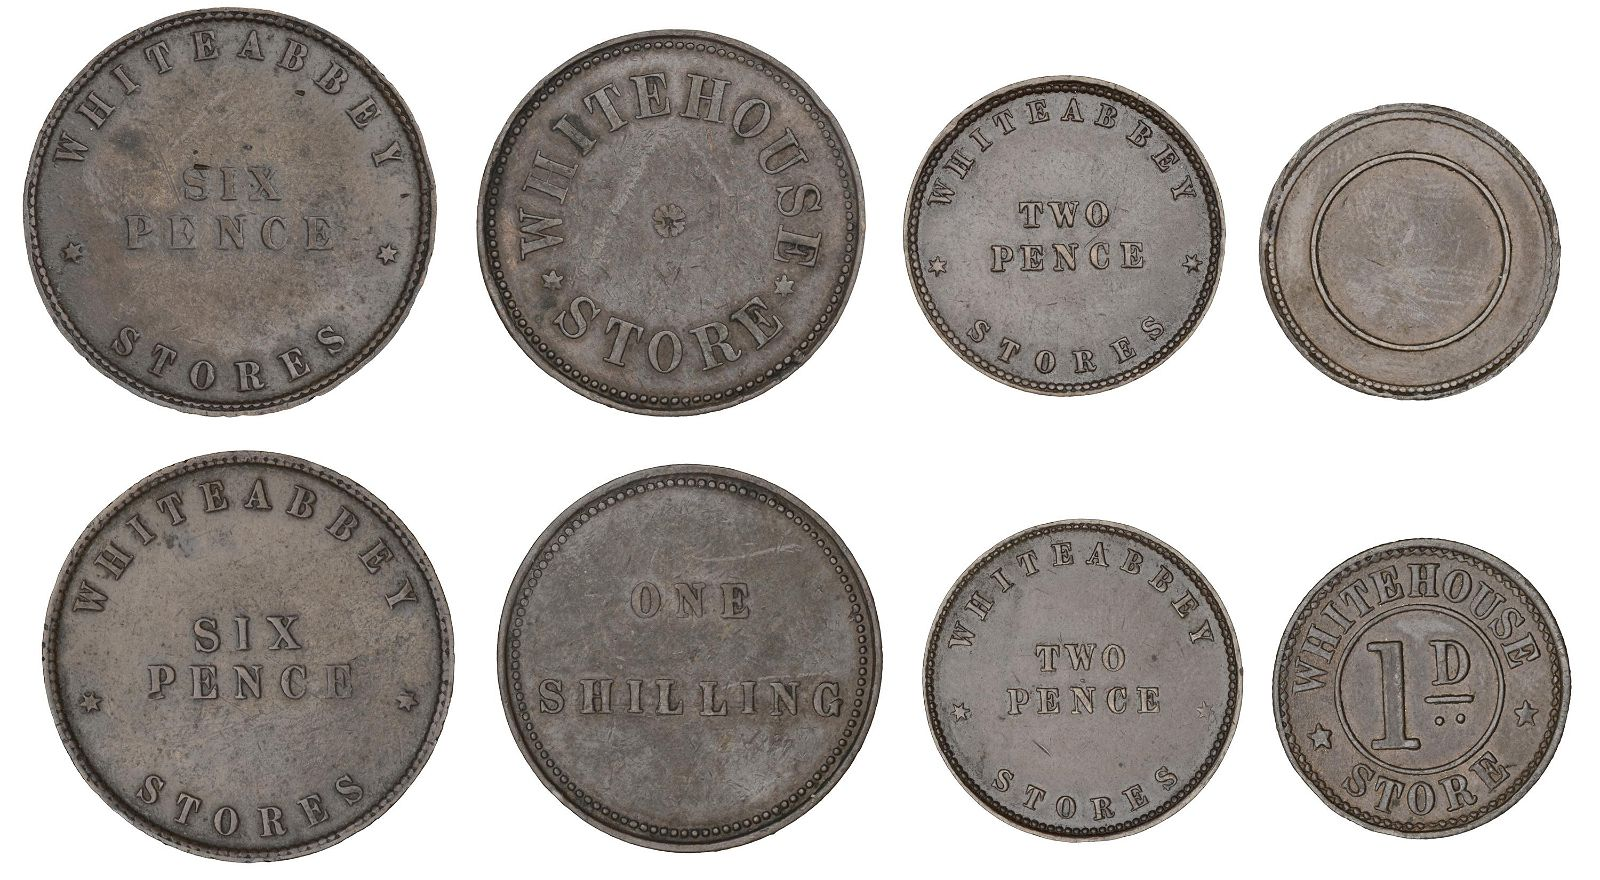 Irish Tokens from the Collection of the late Barry